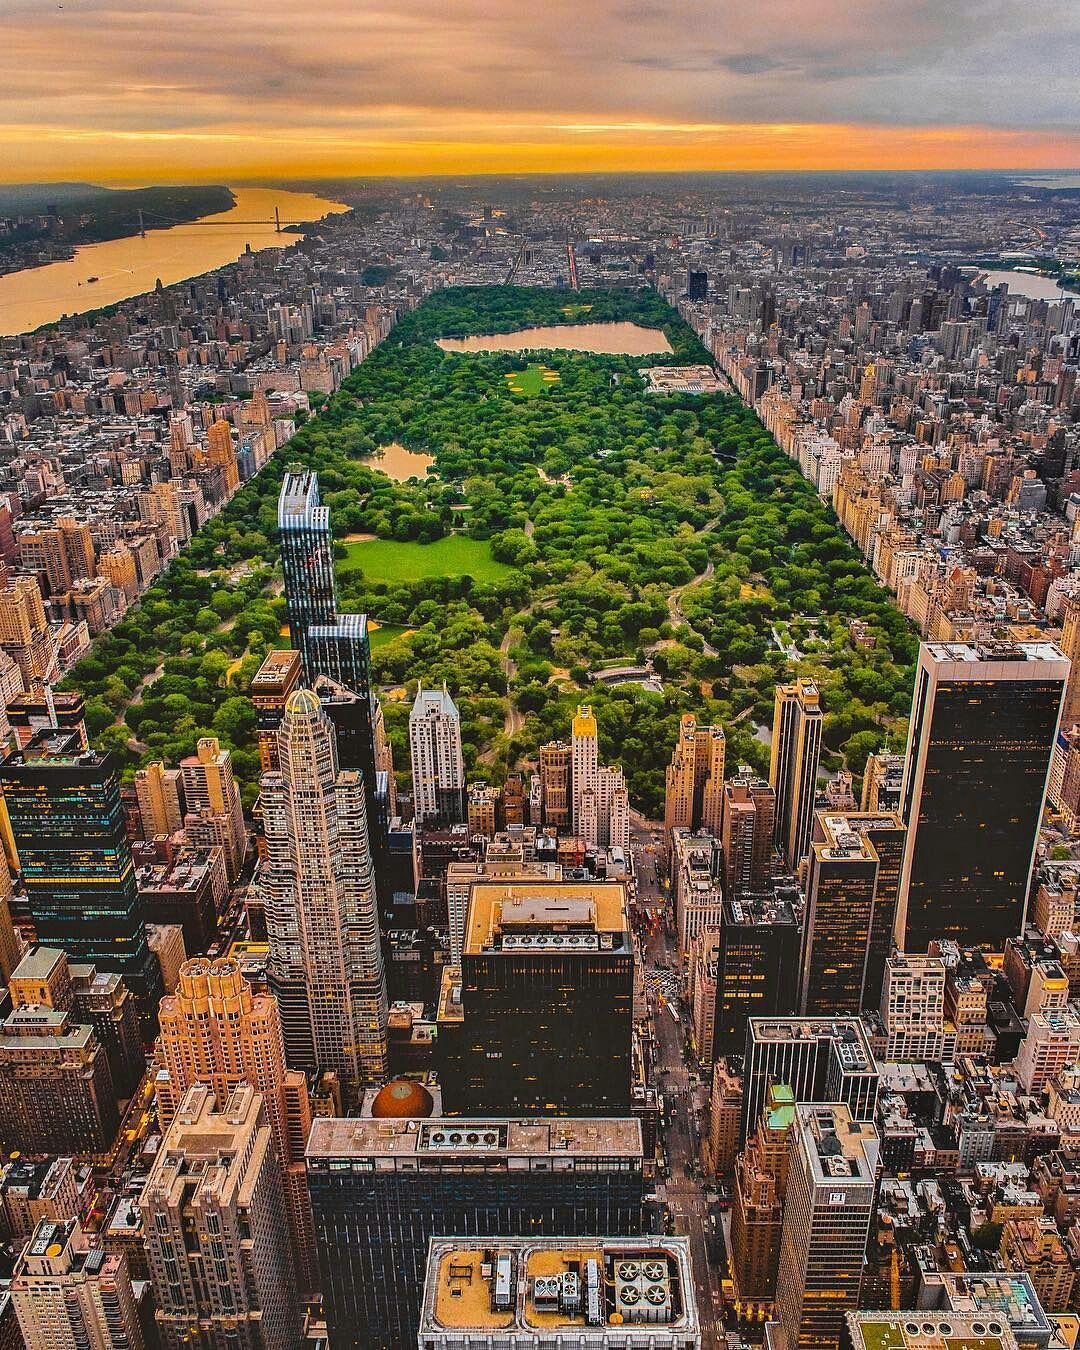 Cetral Park: Central Park From Above By Mike Gutkin